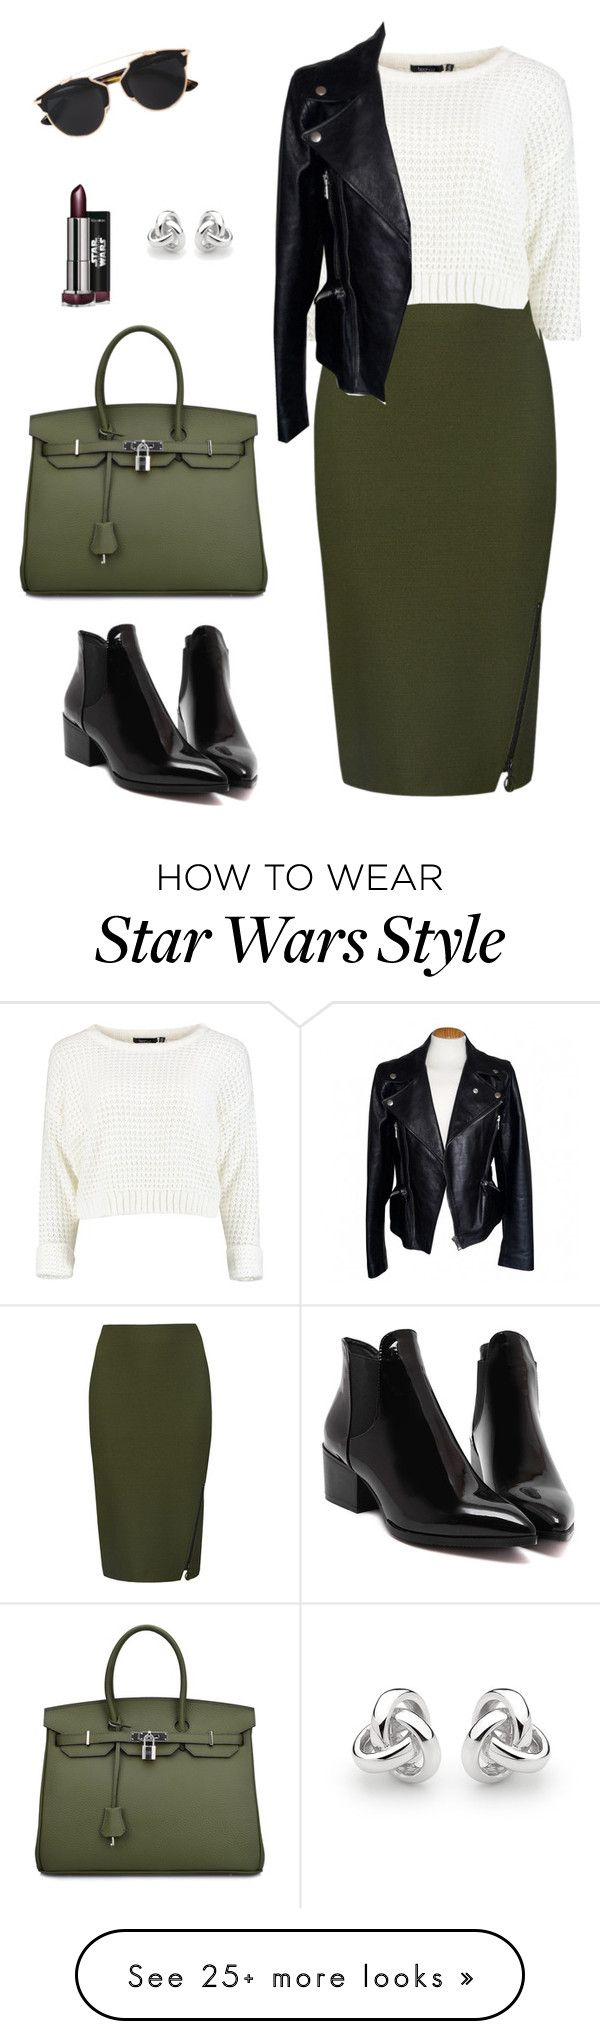 """Untitled #527"" by tamam1996 on Polyvore featuring M&S Collection, Alexander McQueen, Christian Dior, Georgini, women's clothing, women's fashion, women, female, woman and misses"